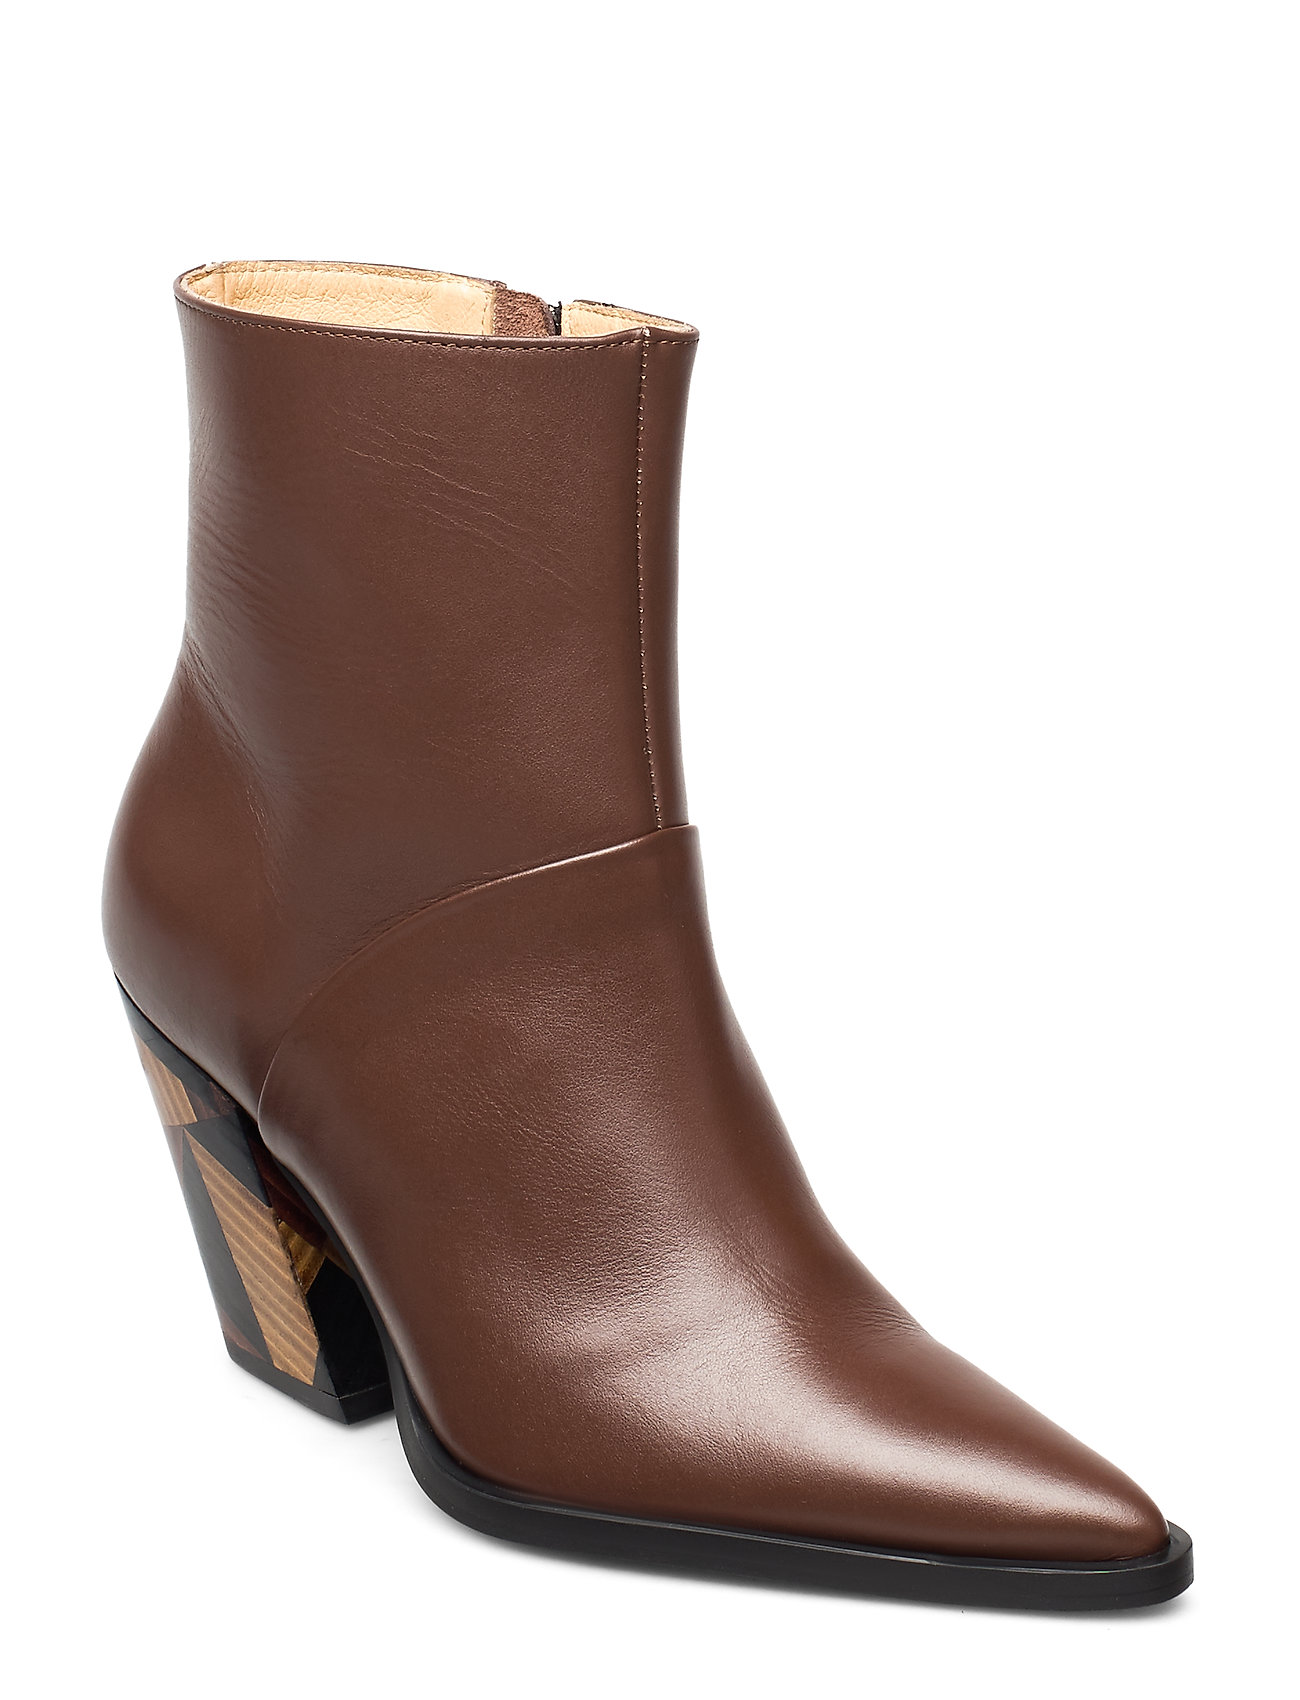 Image of Escape From Reality Shoes Boots Ankle Boots Ankle Boot - Heel Brun ANNY NORD (3463780469)